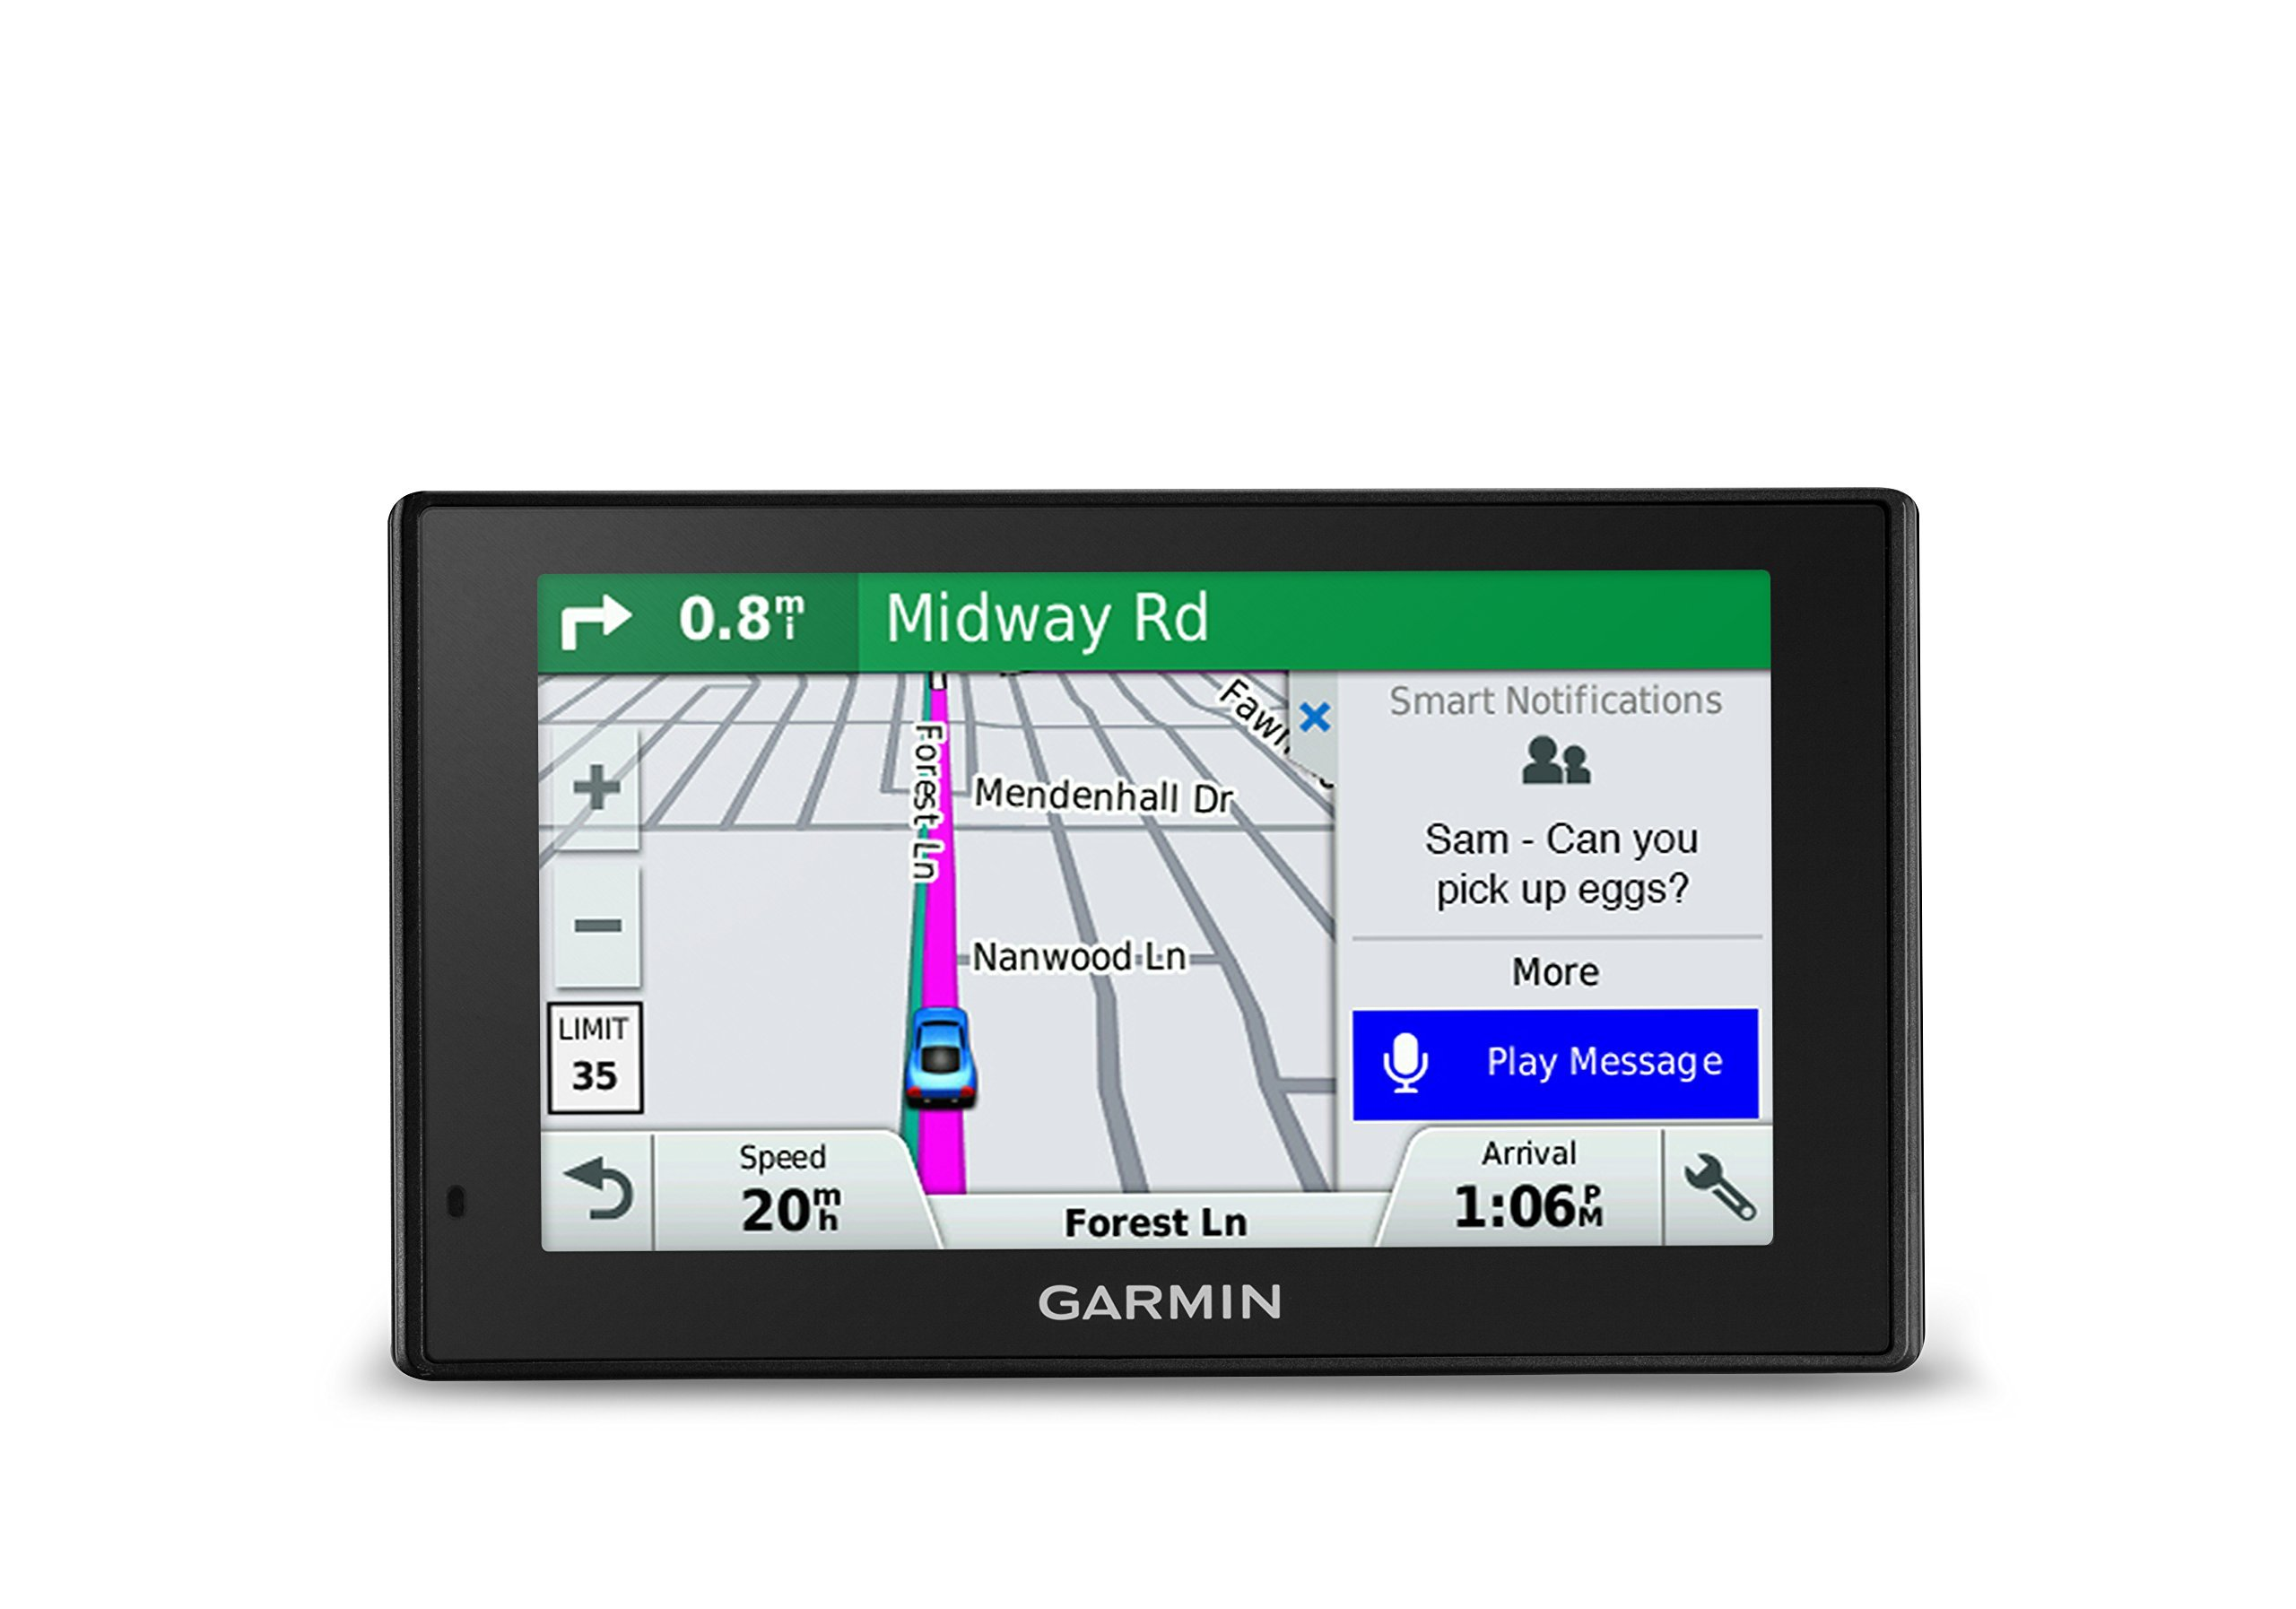 Garmin DriveSmart 51 NA LMT-S with Lifetime Maps/Traffic, Live Parking, Bluetooth,WiFi, Smart Notifications, Voice Activation, Driver Alerts, TripAdvisor, Foursquare (Certified Refurbished)